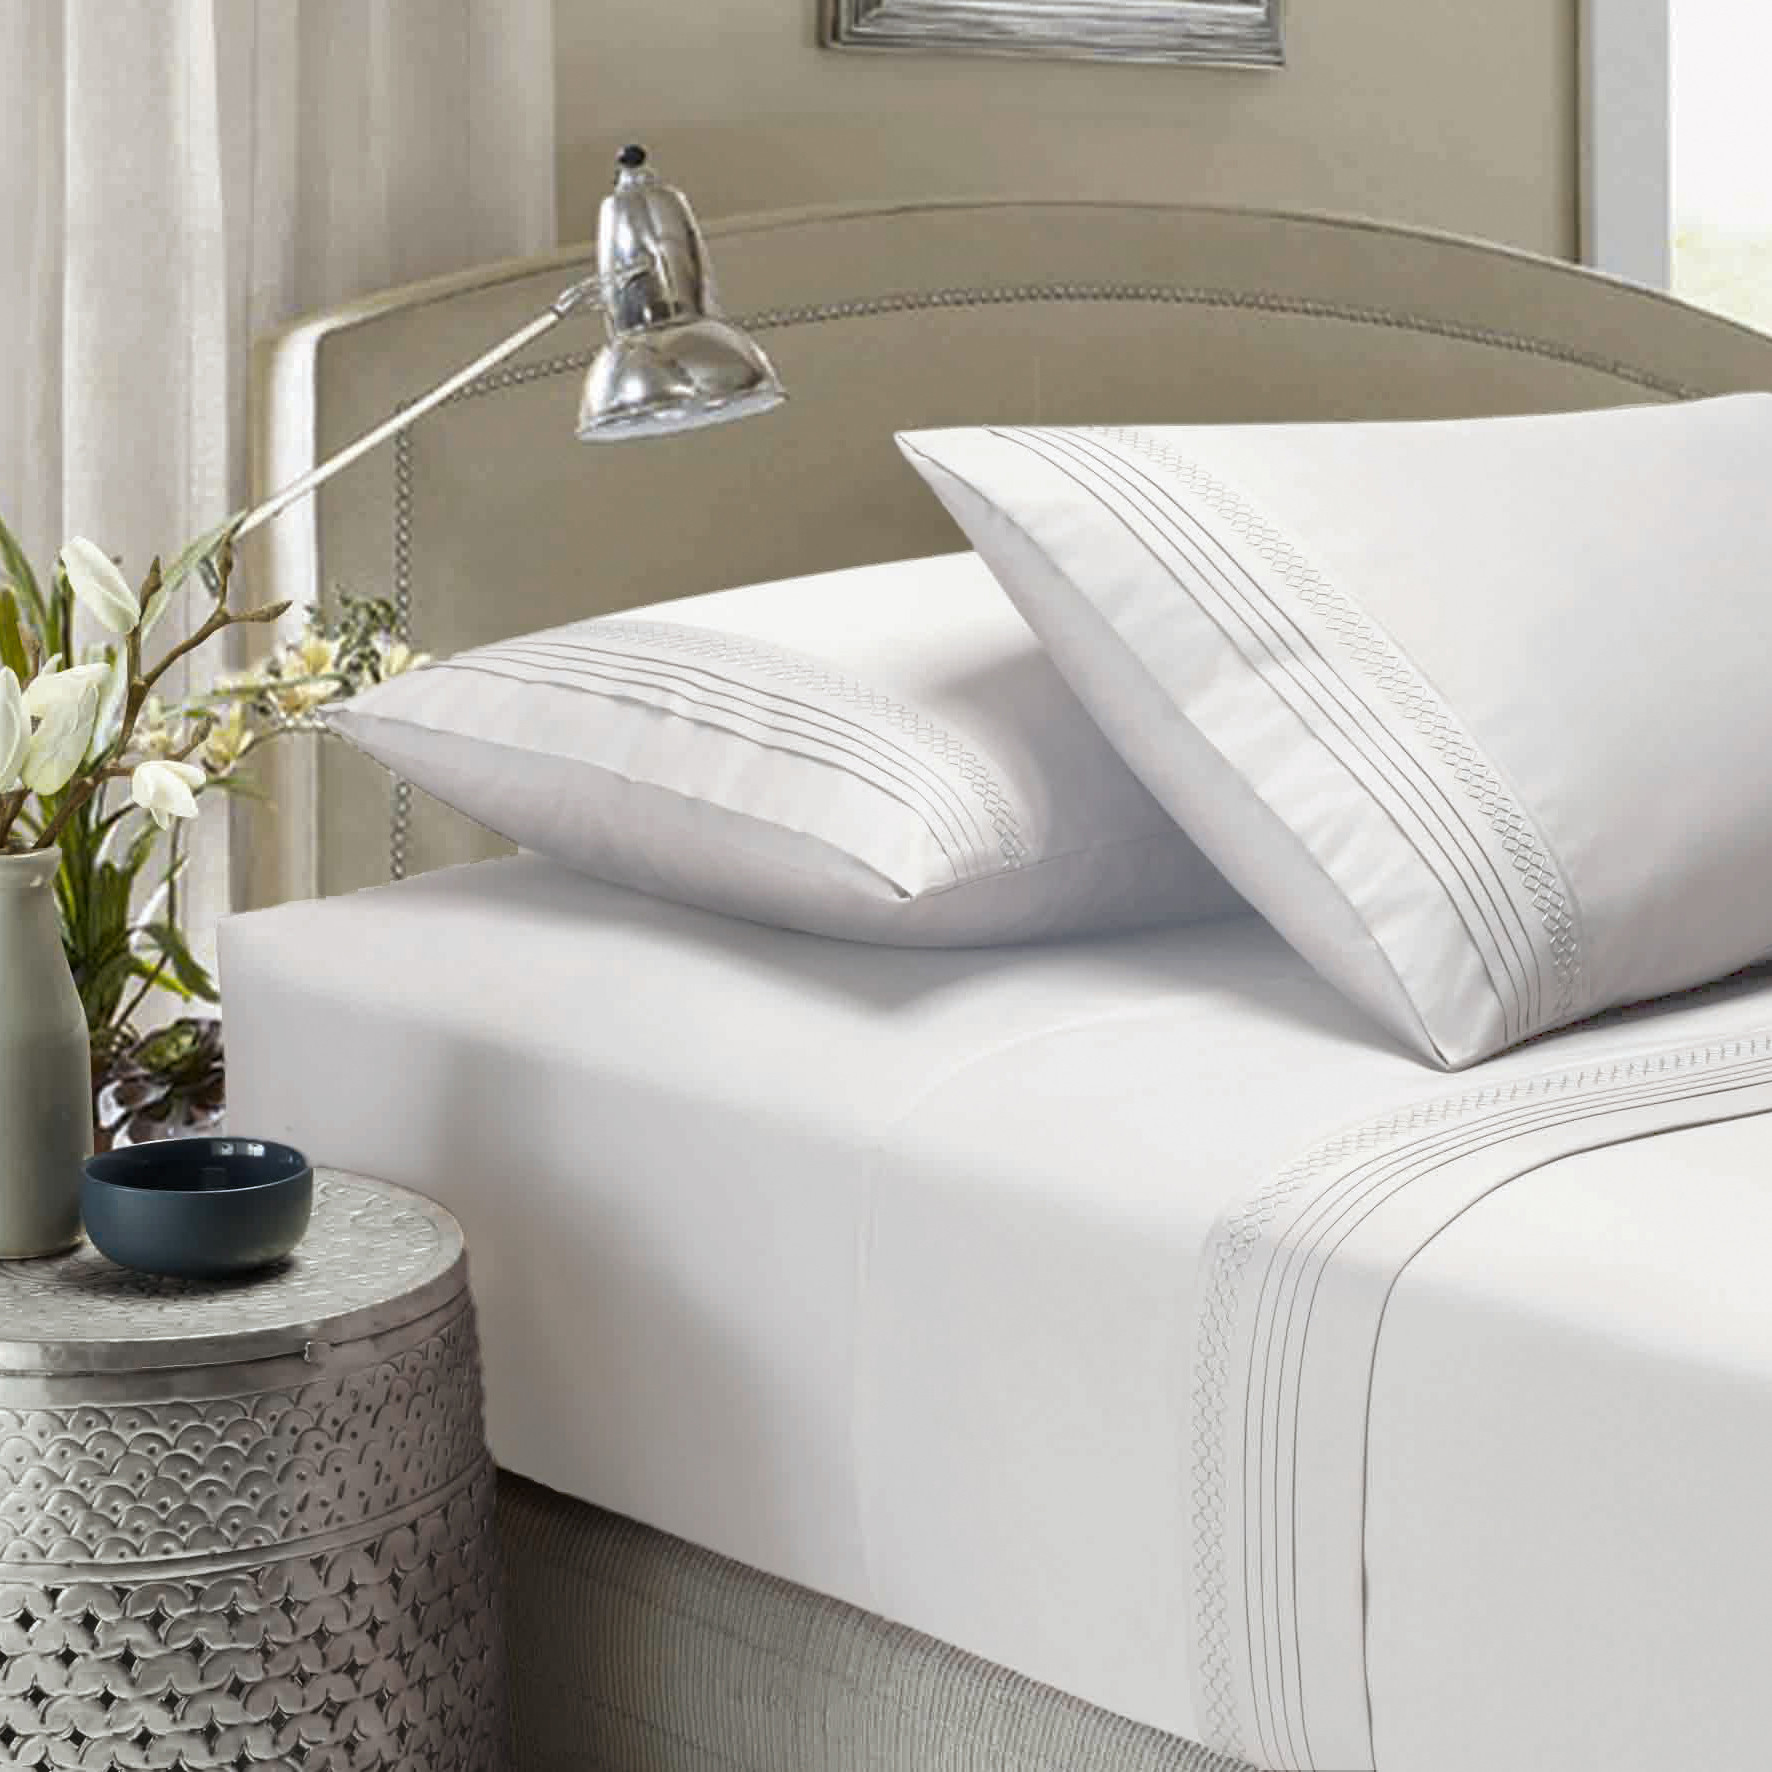 About white 1000tc egyptian cotton complete bedding collection sheet - Sku Miho1029 White Style Co Smocking 1000tc Egyptian Cotton Sheet Sets Is Also Sometimes Listed Under The Following Manufacturer Numbers 0221037